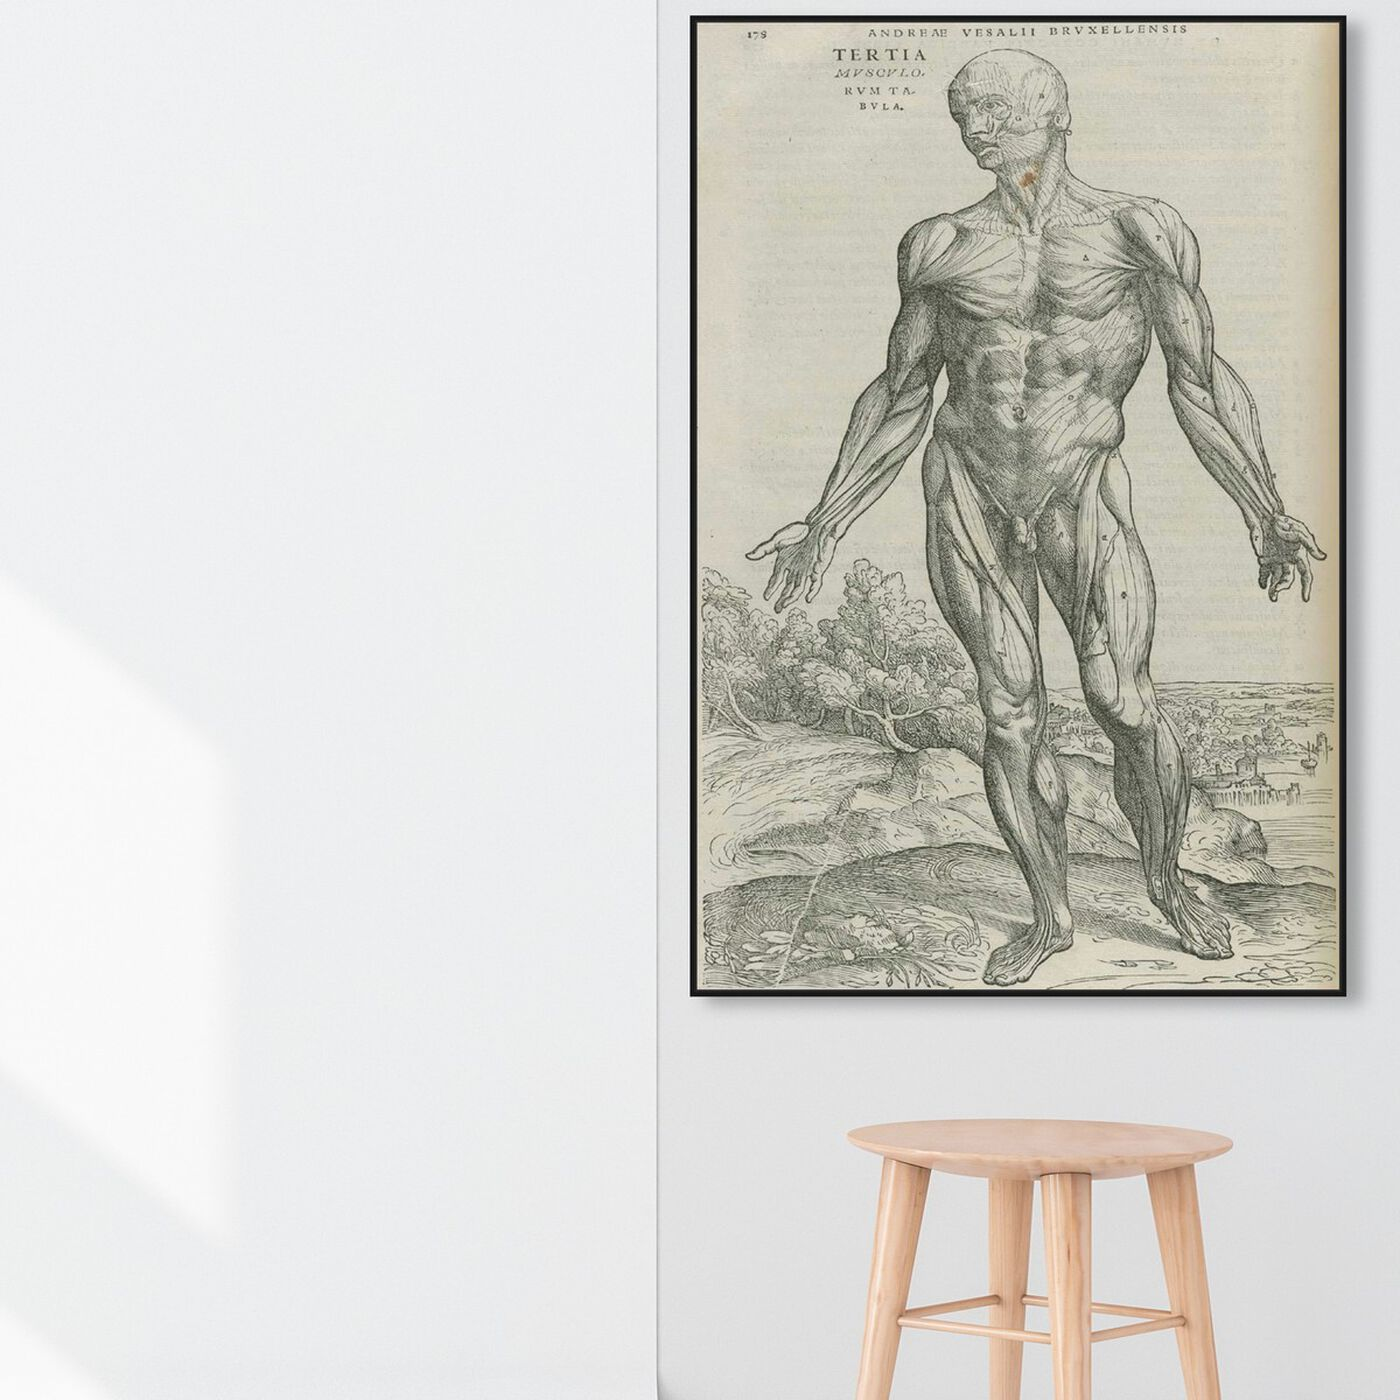 Hanging view of Vesalius IV - The Art Cabinet featuring classic and figurative and nudes art.